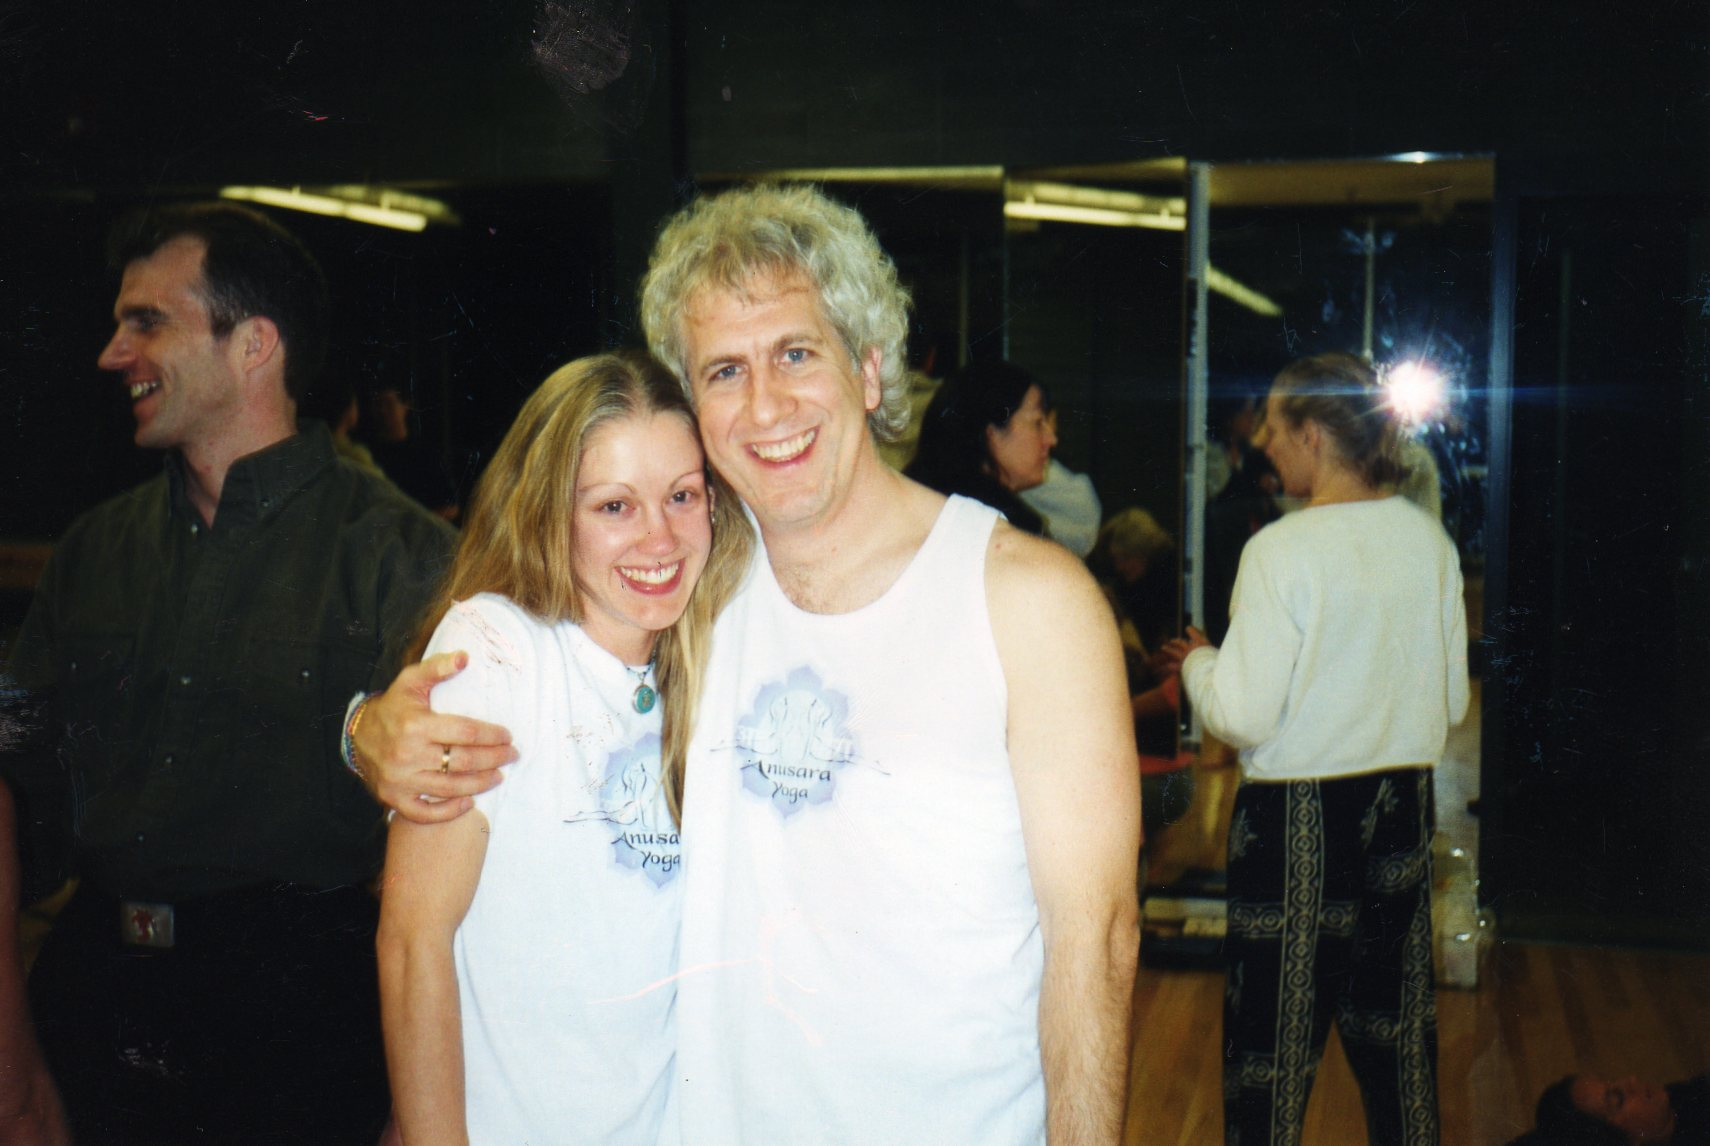 KK and John - Scottsdale Advanced Intensive 2001